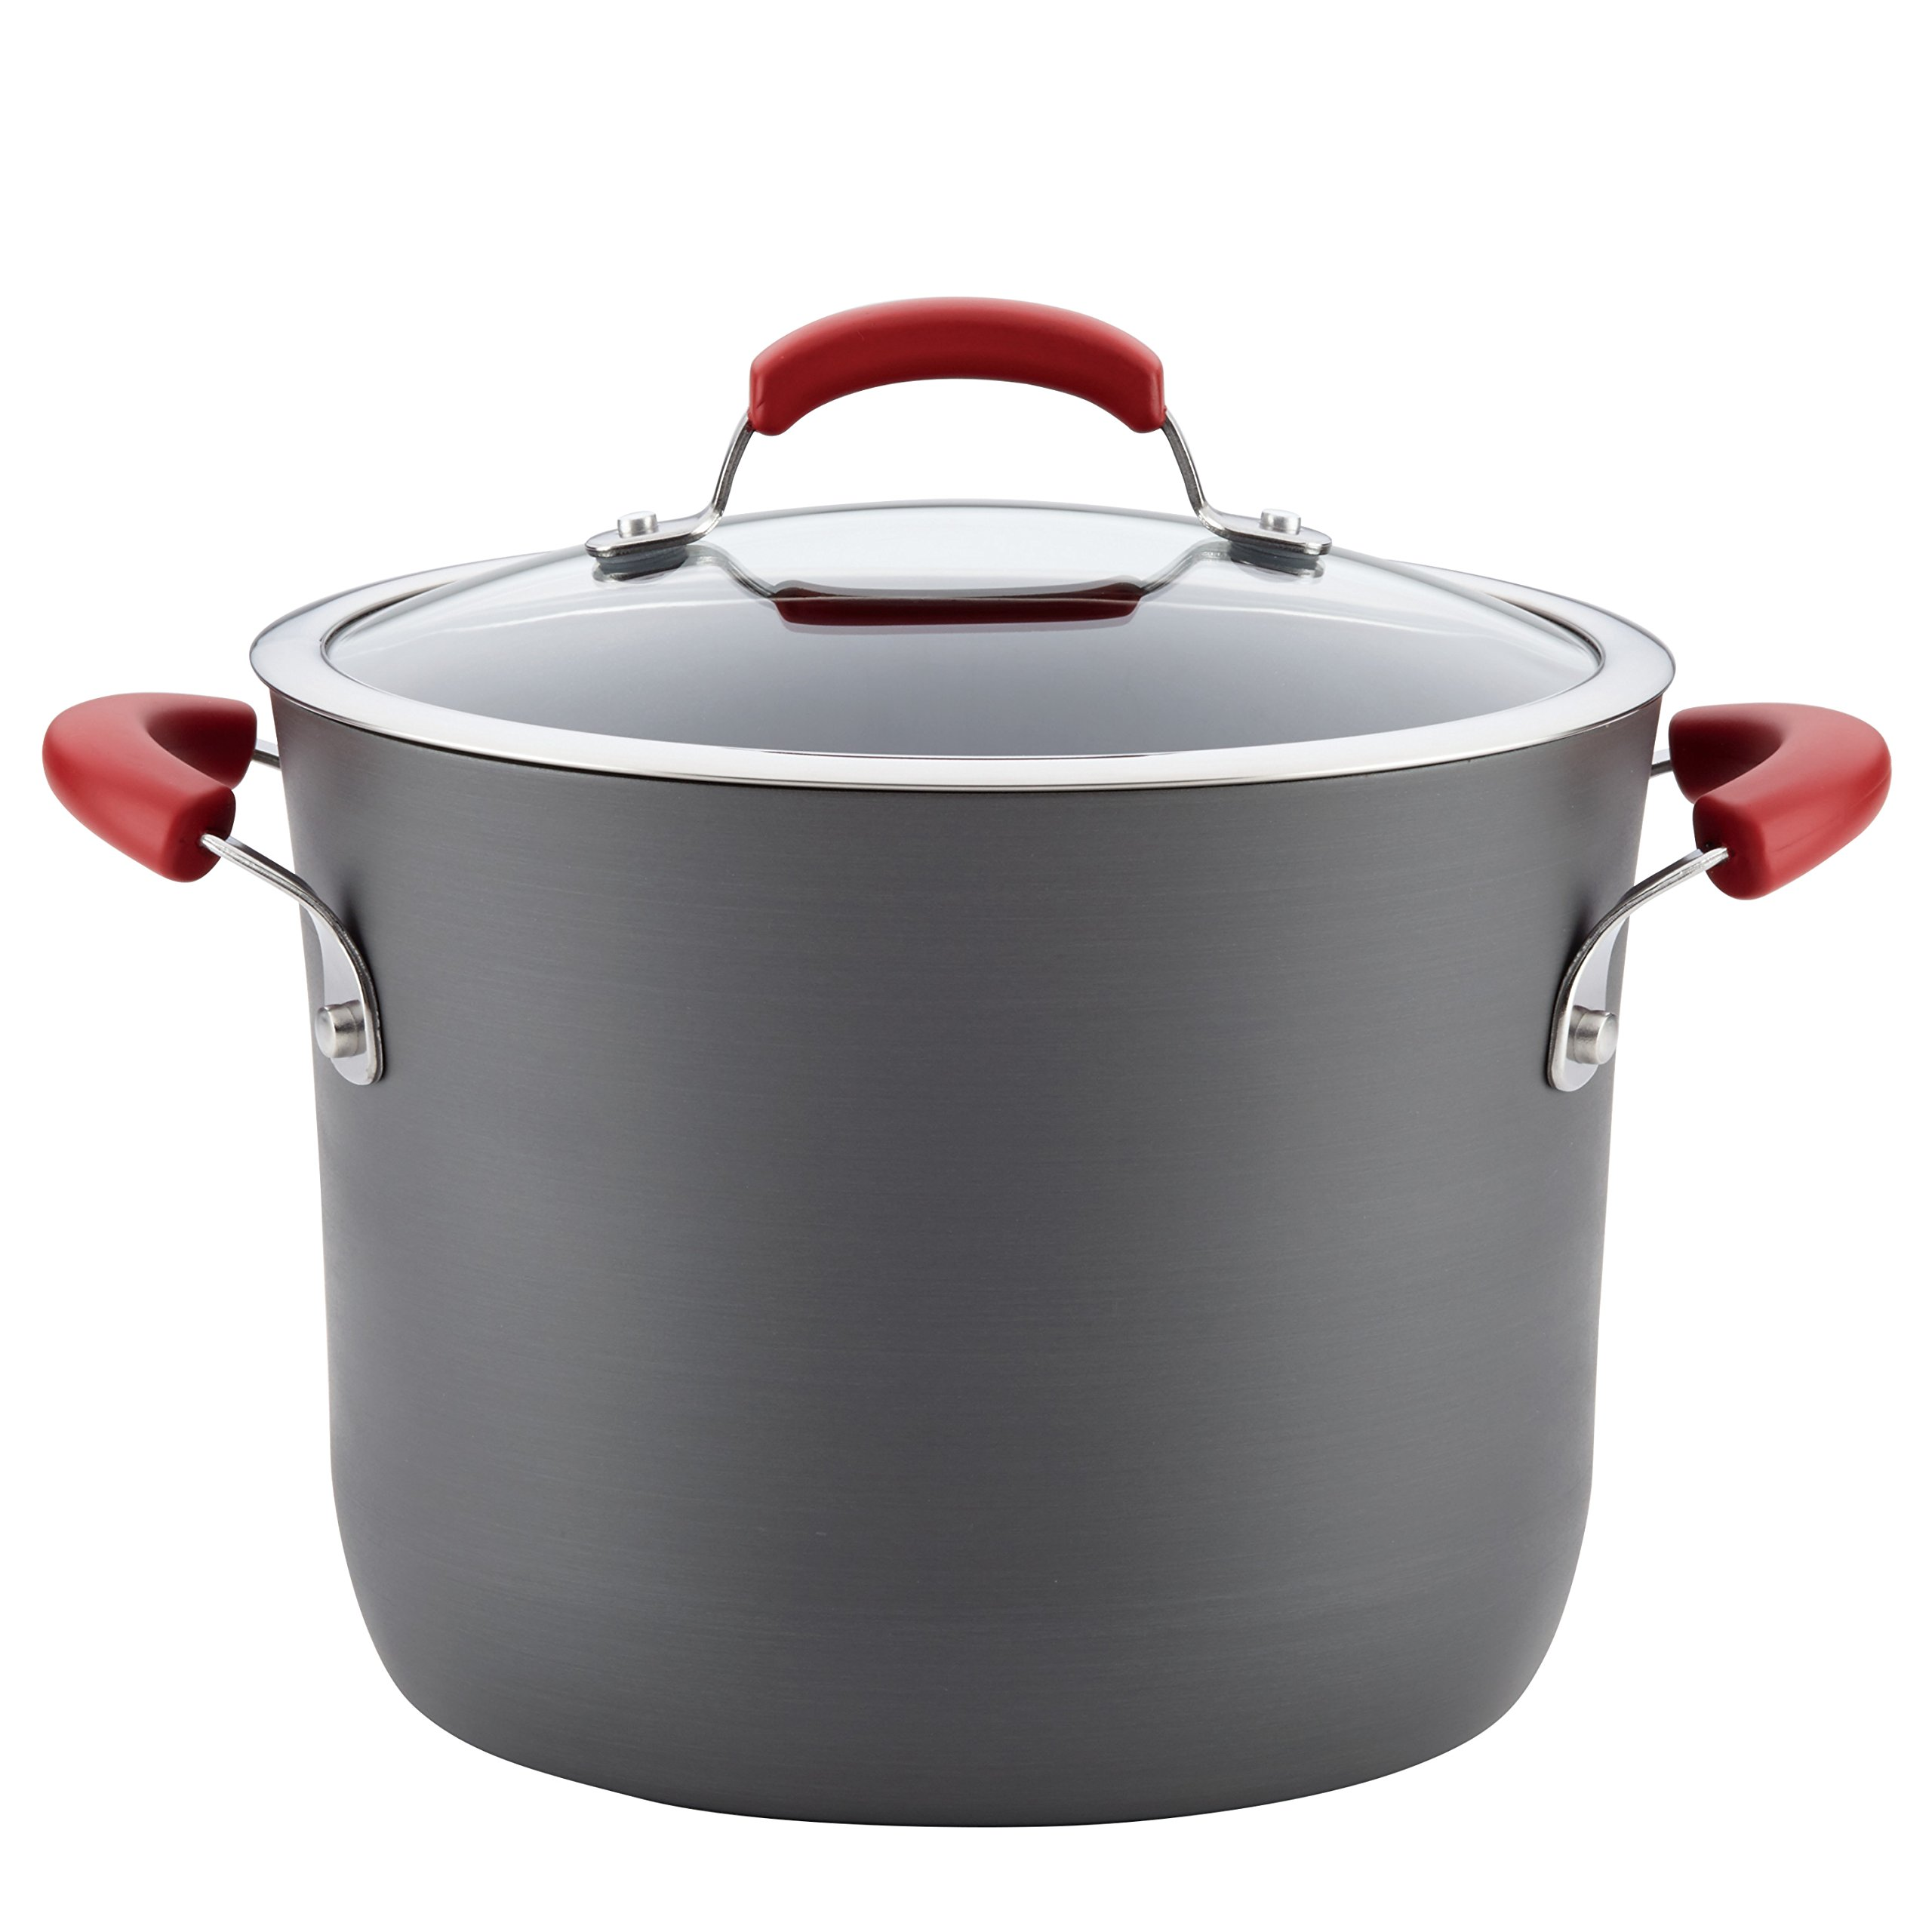 Rachael Ray Hard-Anodized Aluminum Nonstick Covered Stockpot, 8-Quart, Gray with Red Handles by Rachael Ray